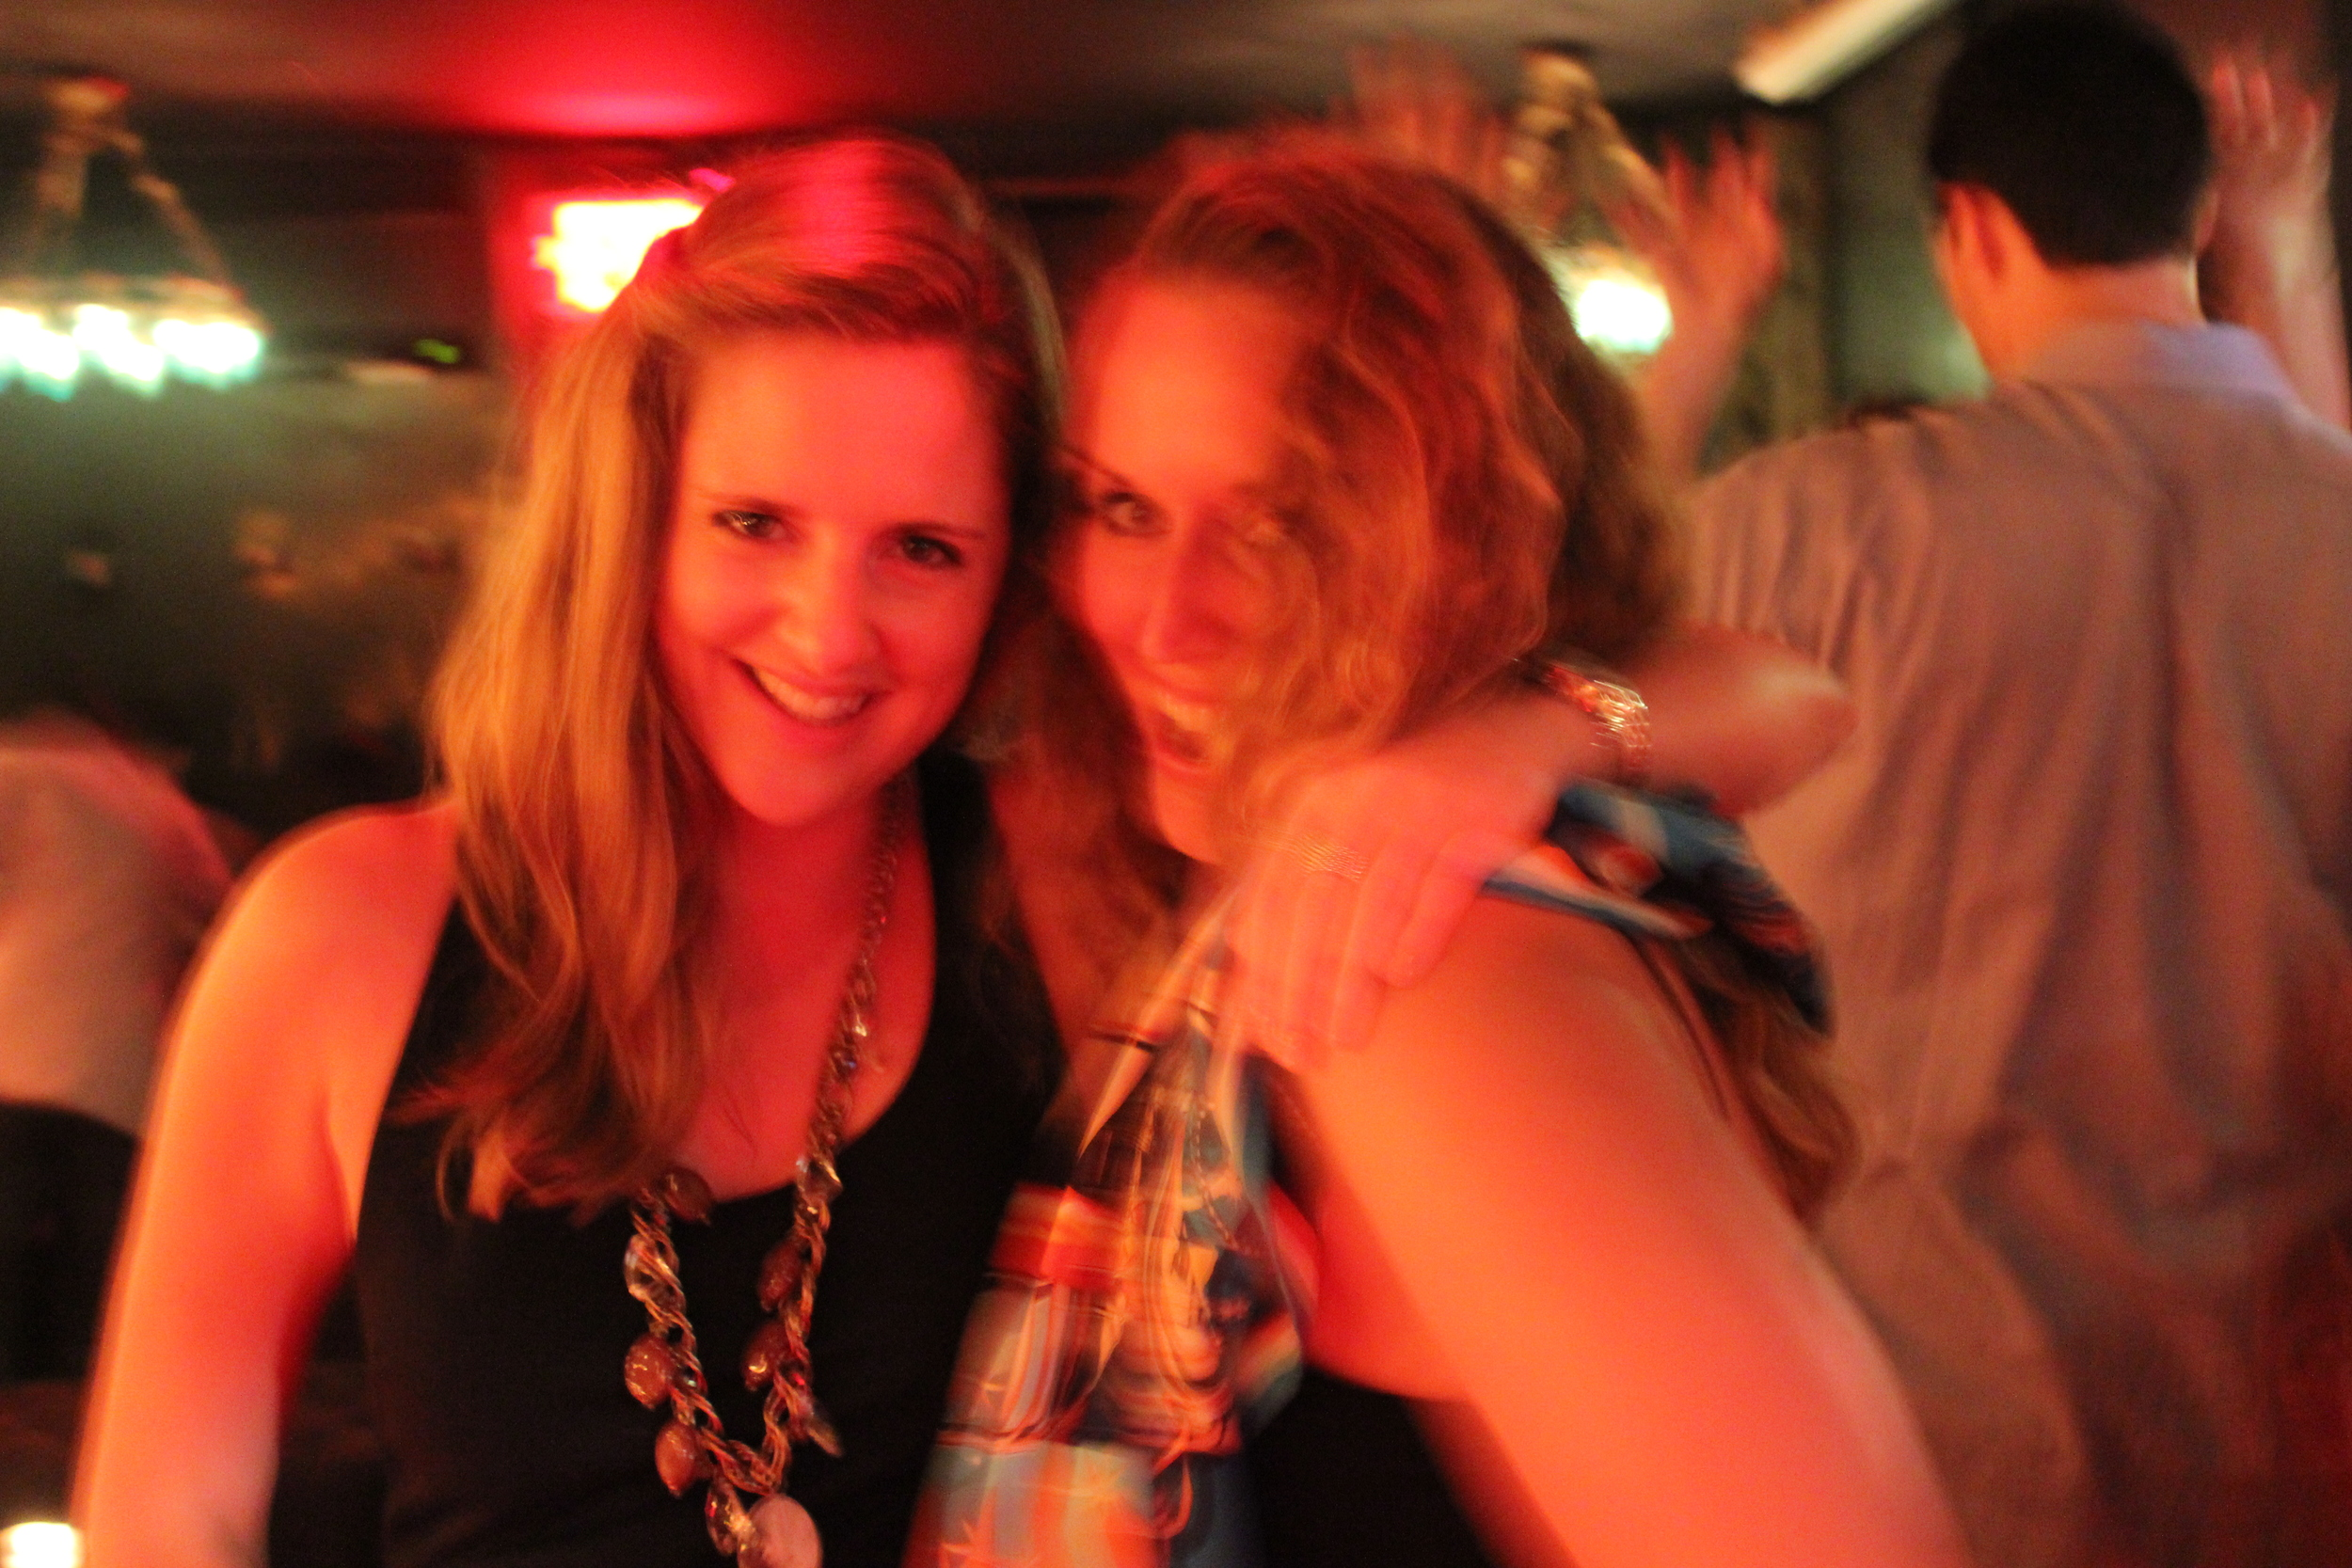 A bit blurry - accurate summary of the evening. Miranda (right) and her friend Brittany